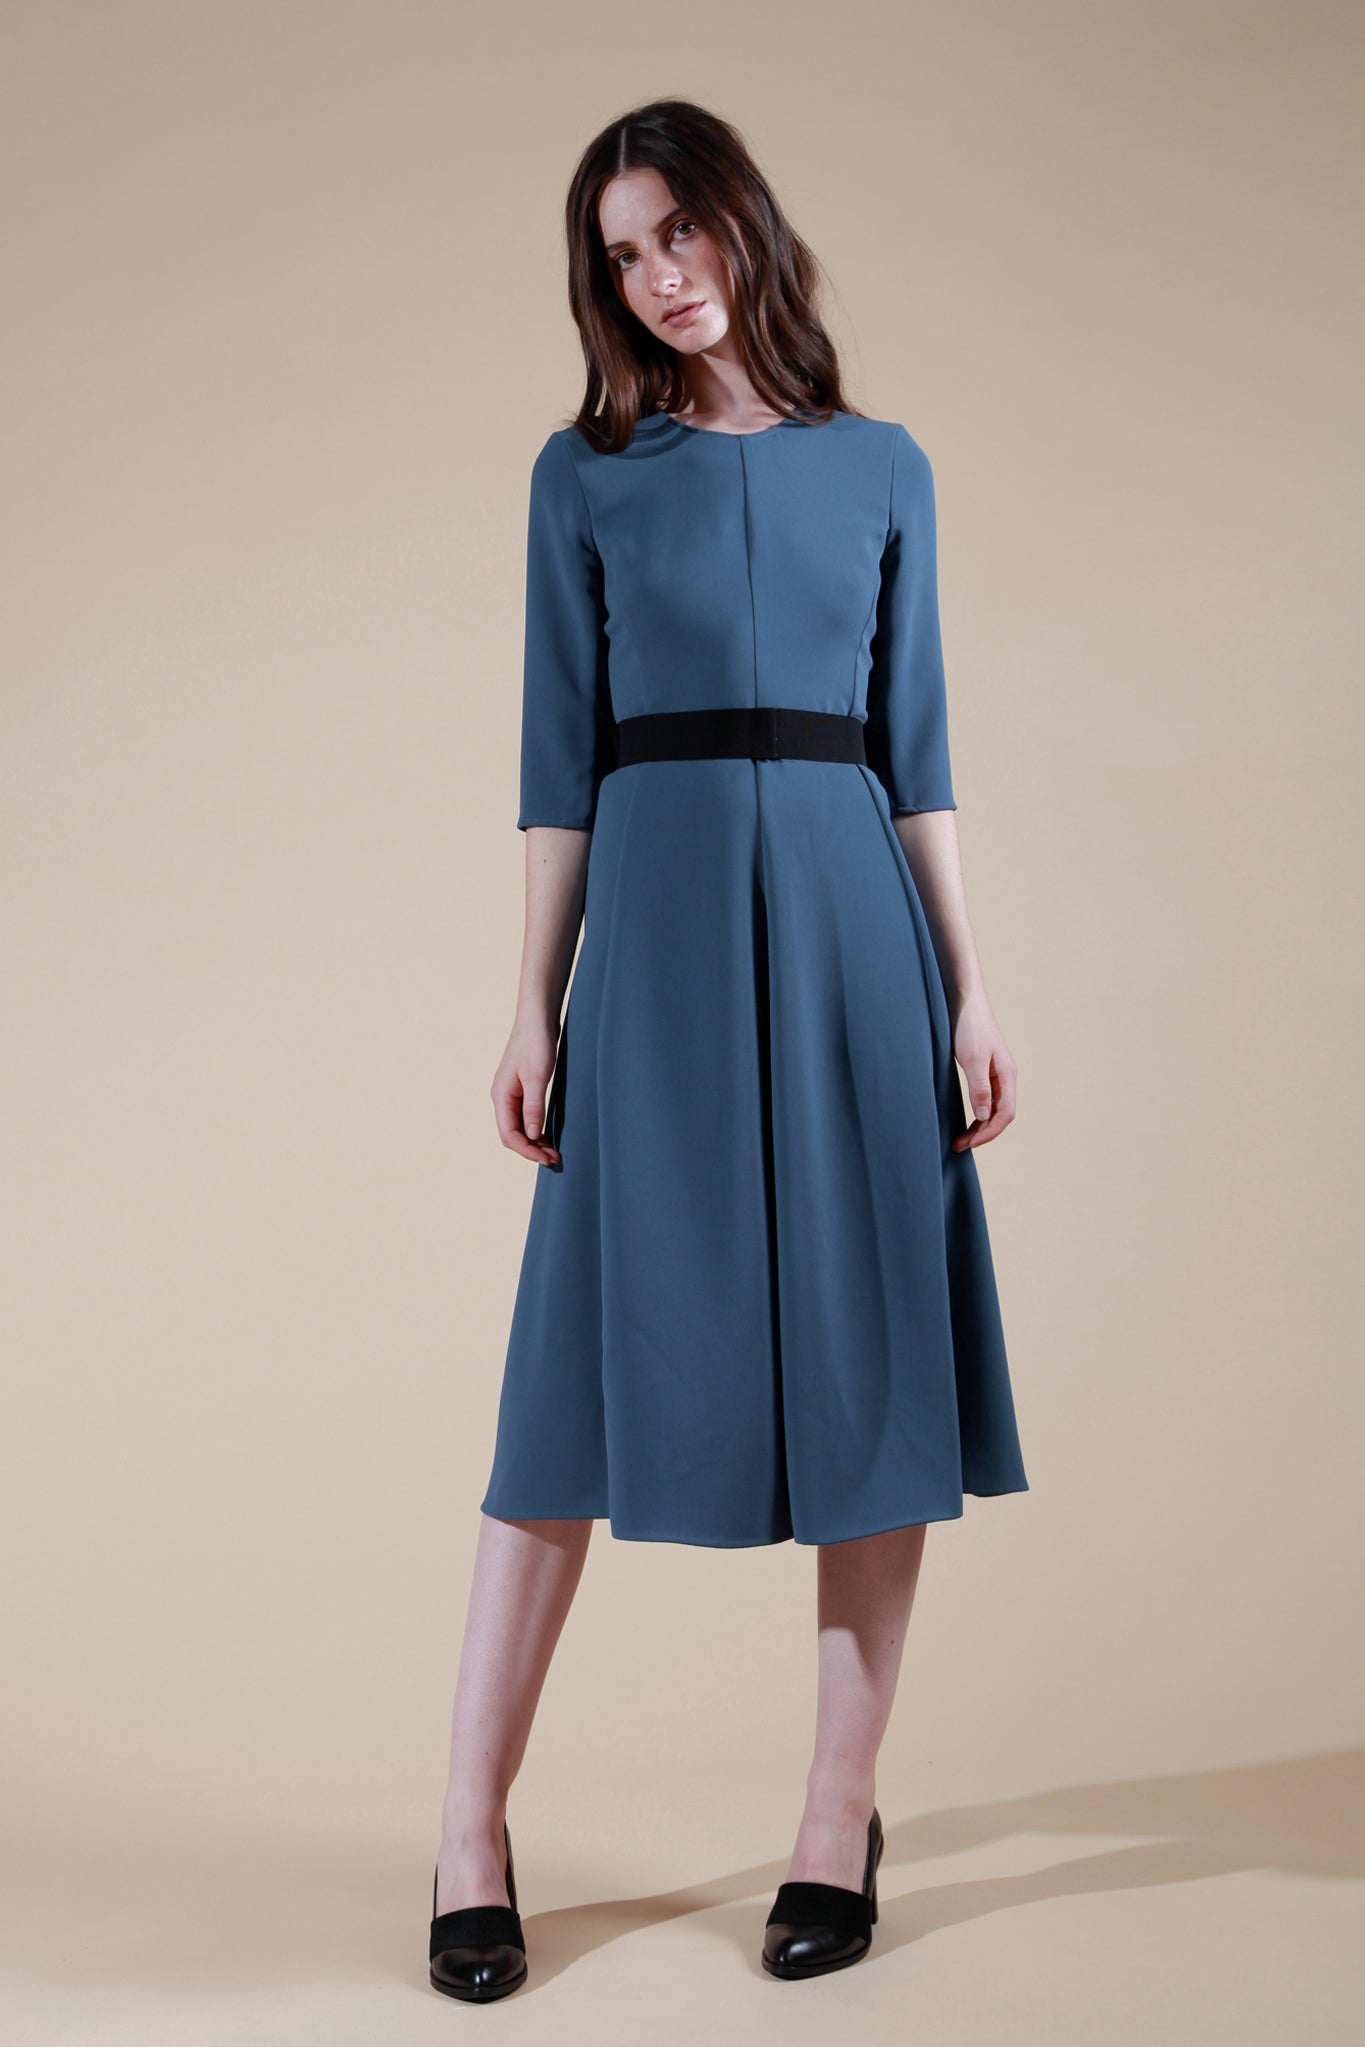 chaumont dress dark blue